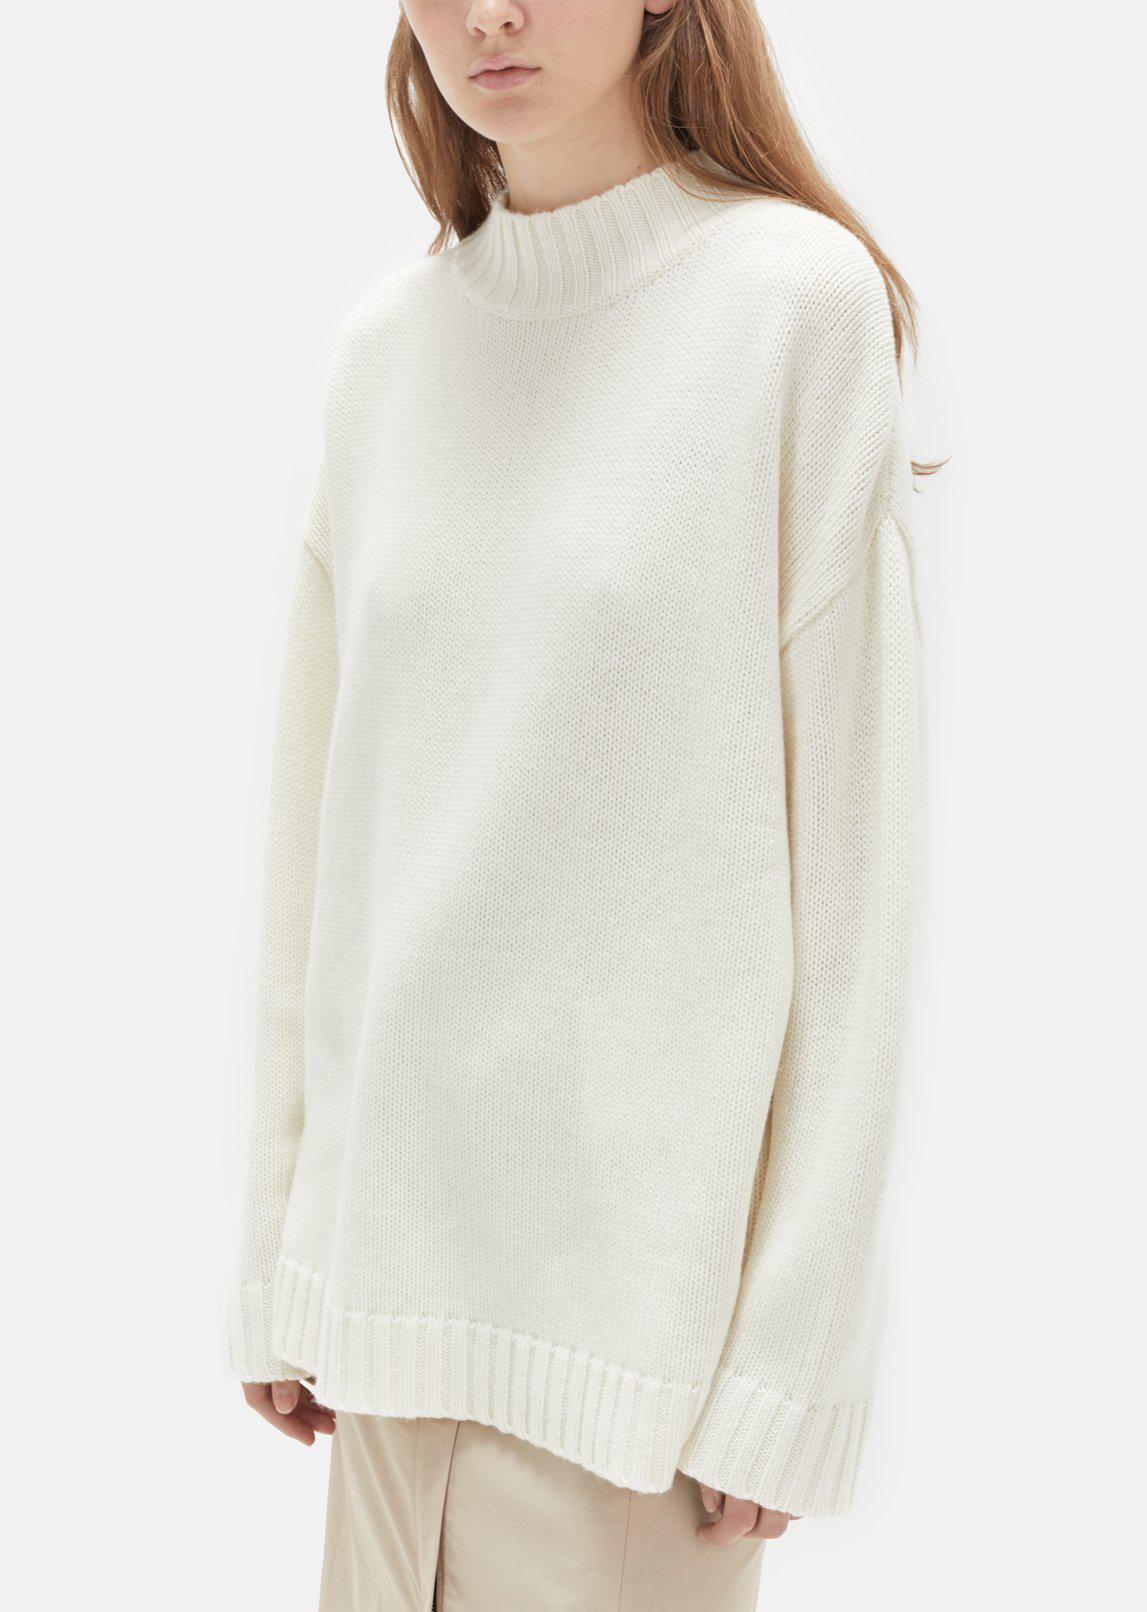 Organic by john patrick Big Sweater in White | Lyst